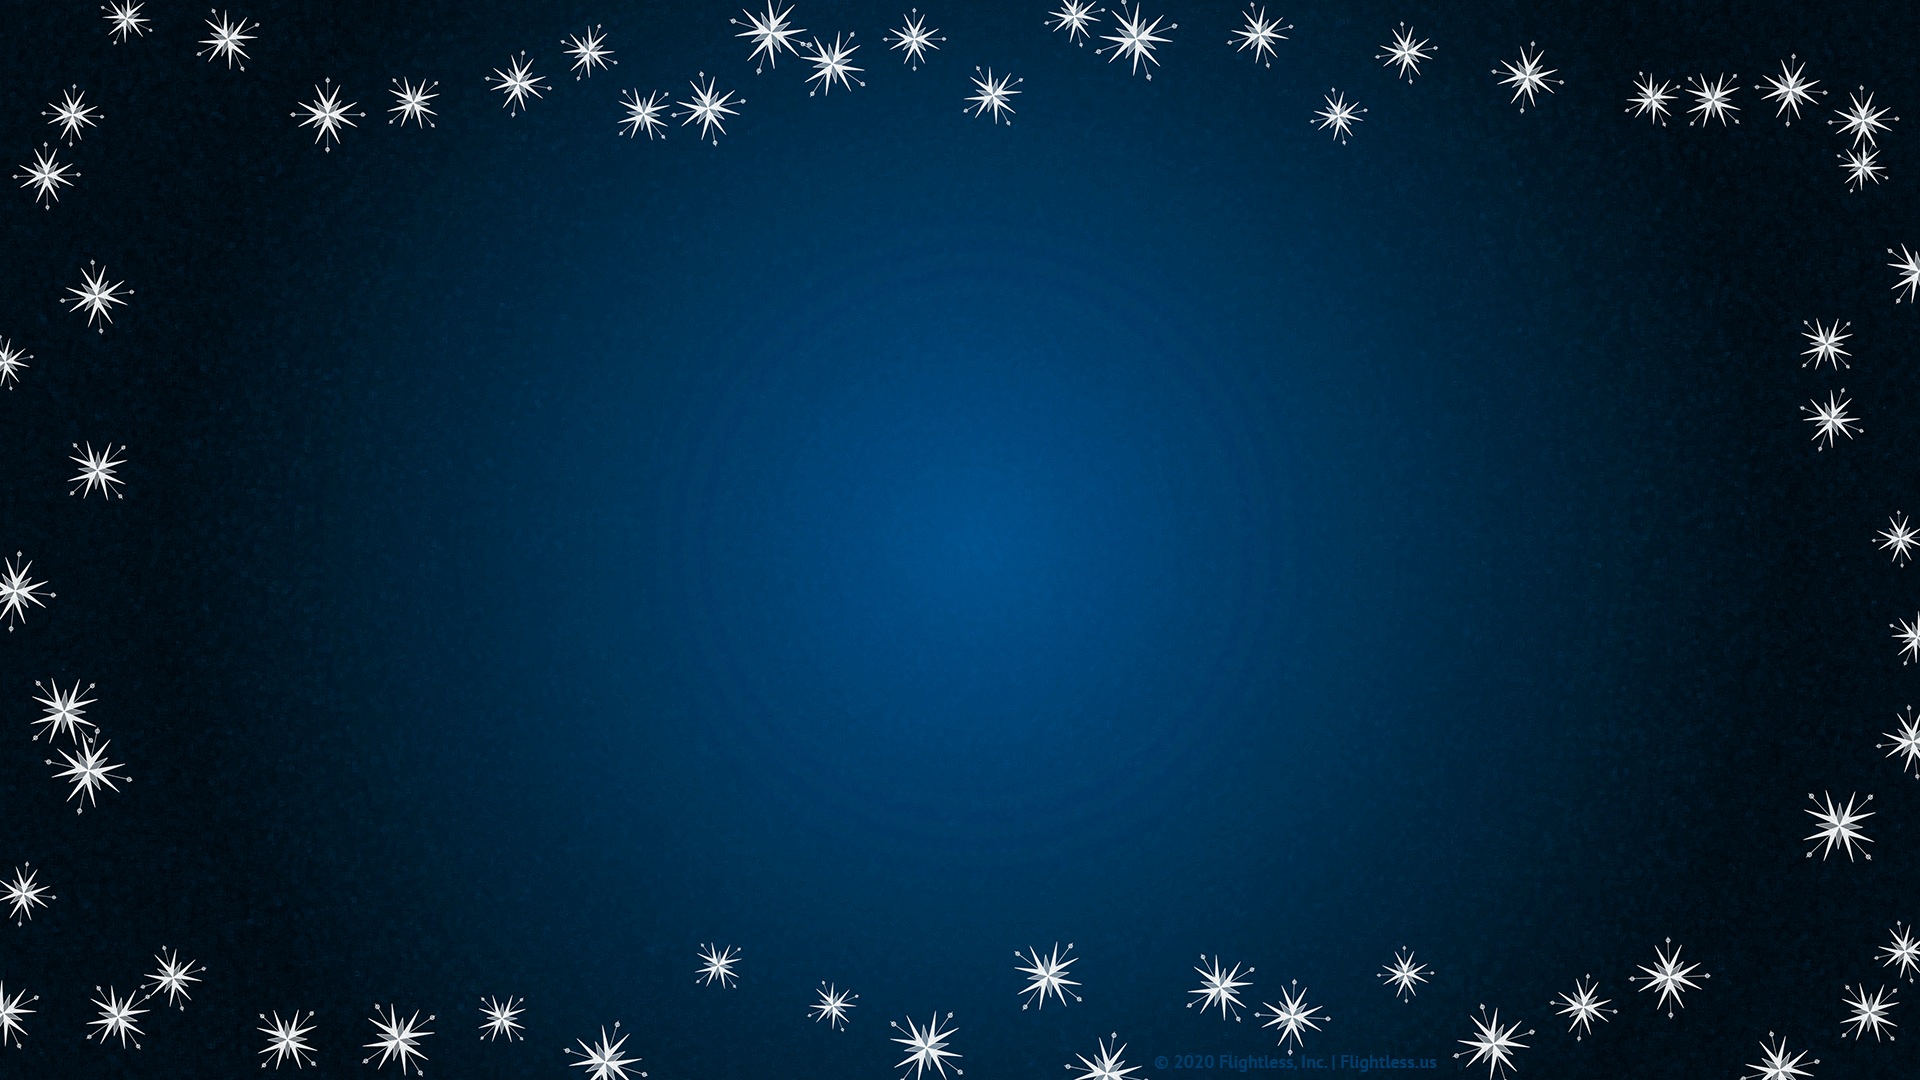 Blue Zoom Background with Snowflakes